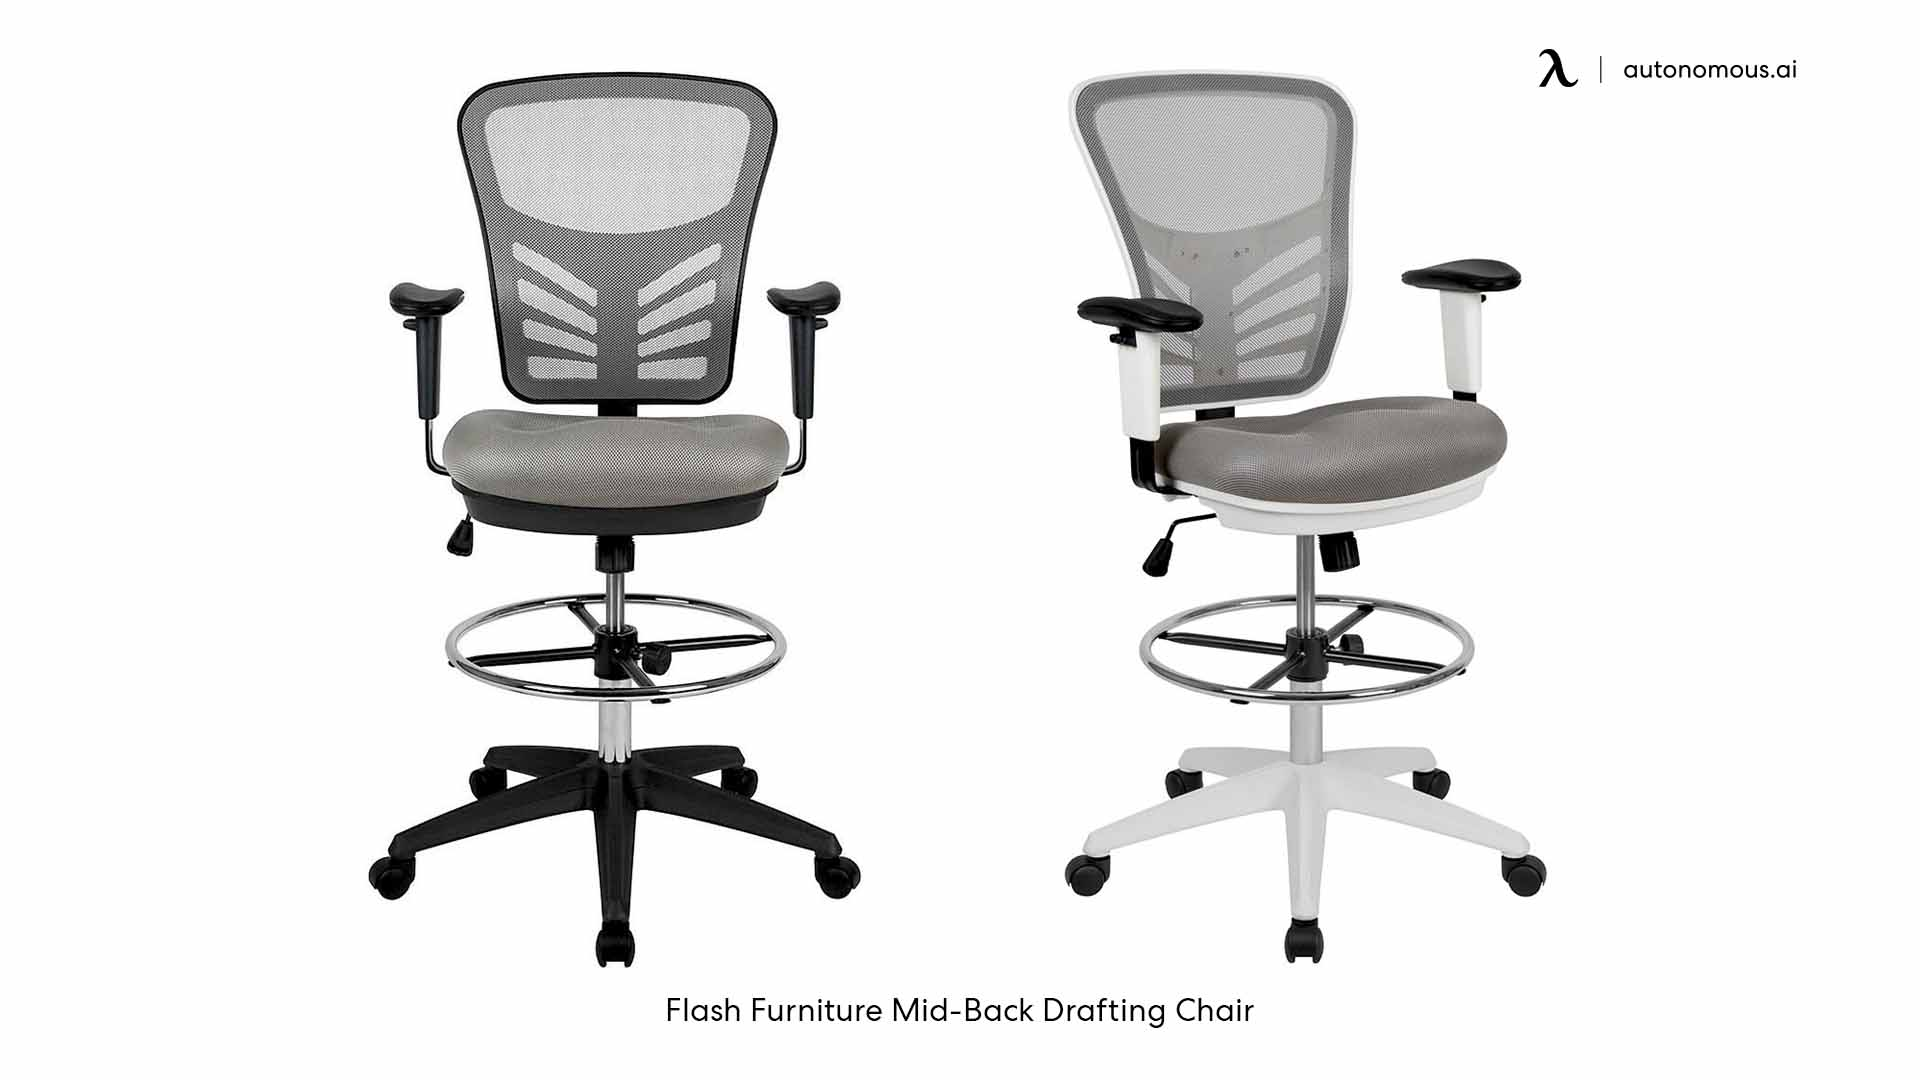 Flash Furniture Mid-Back Drafting Chair